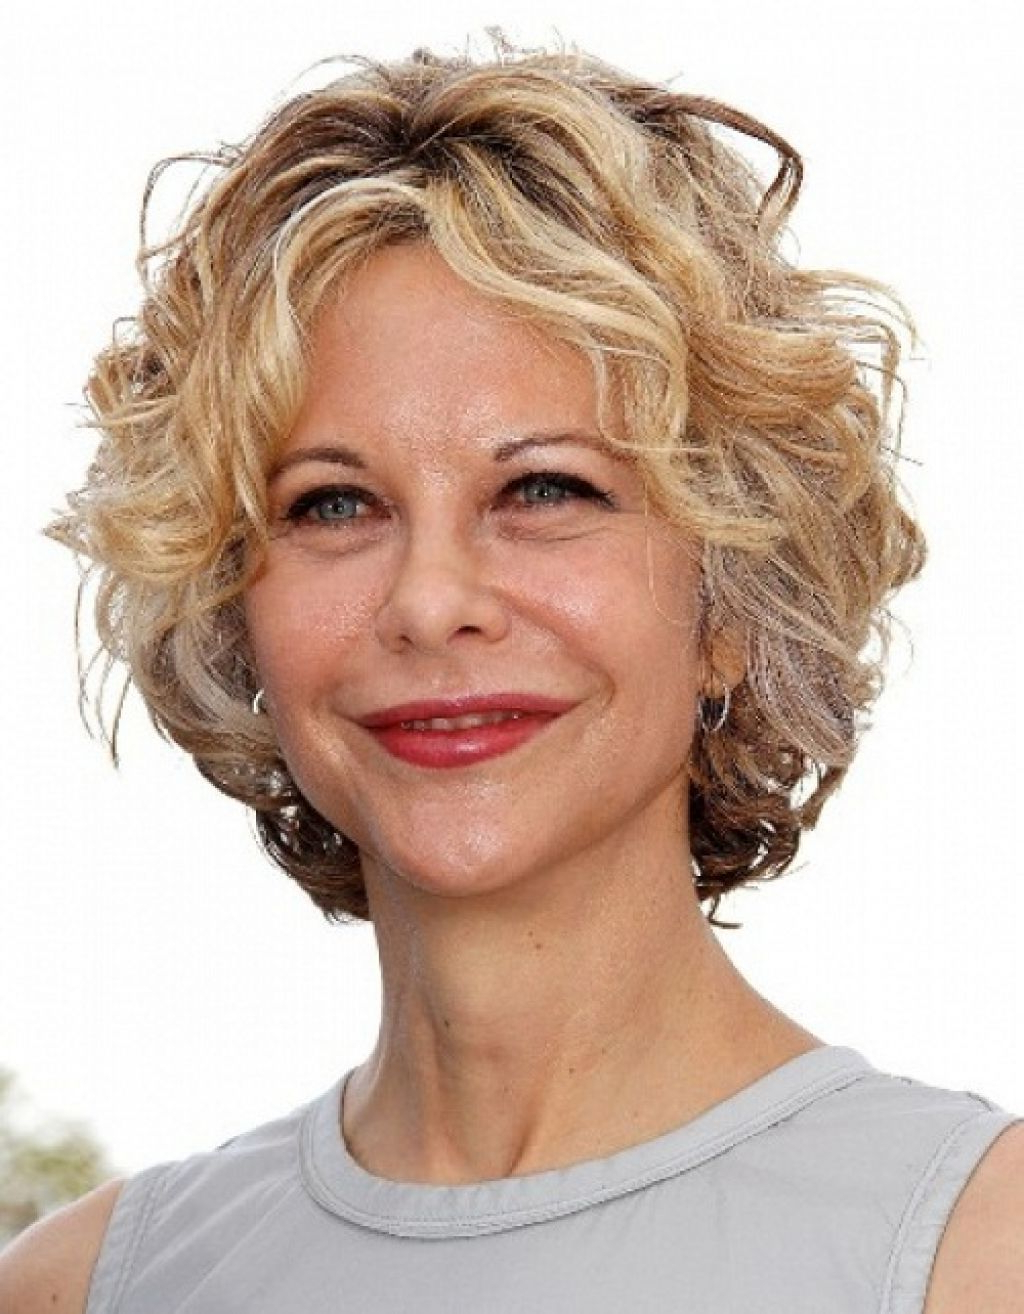 Hair Color For Women Over 40 | Women Short Hairstyles | Hair Intended For Short Haircuts For Women Over 40 With Curly Hair (View 9 of 25)